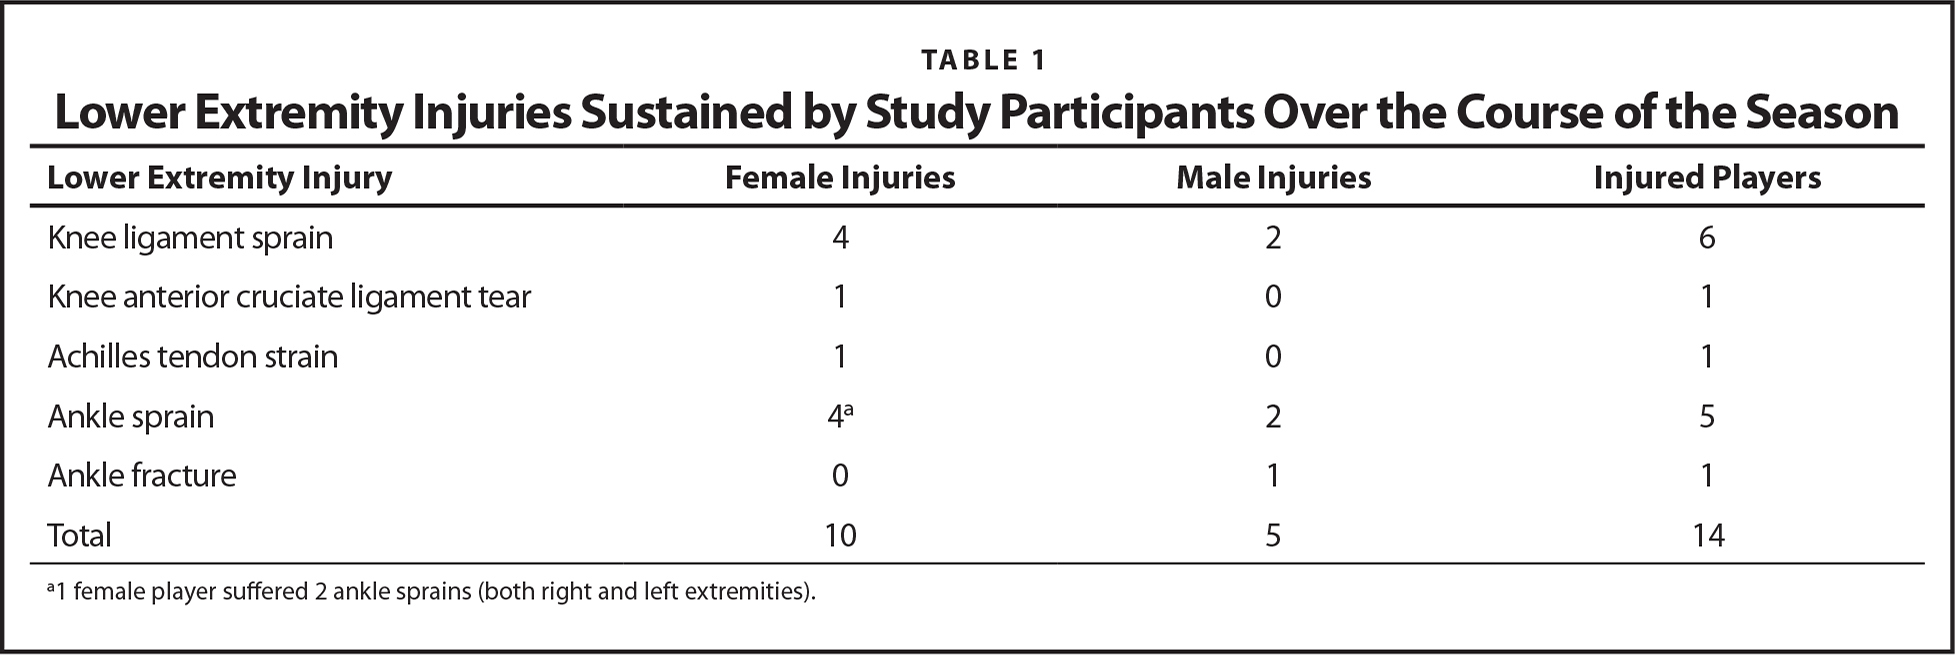 Lower Extremity Injuries Sustained by Study Participants Over the Course of the Season